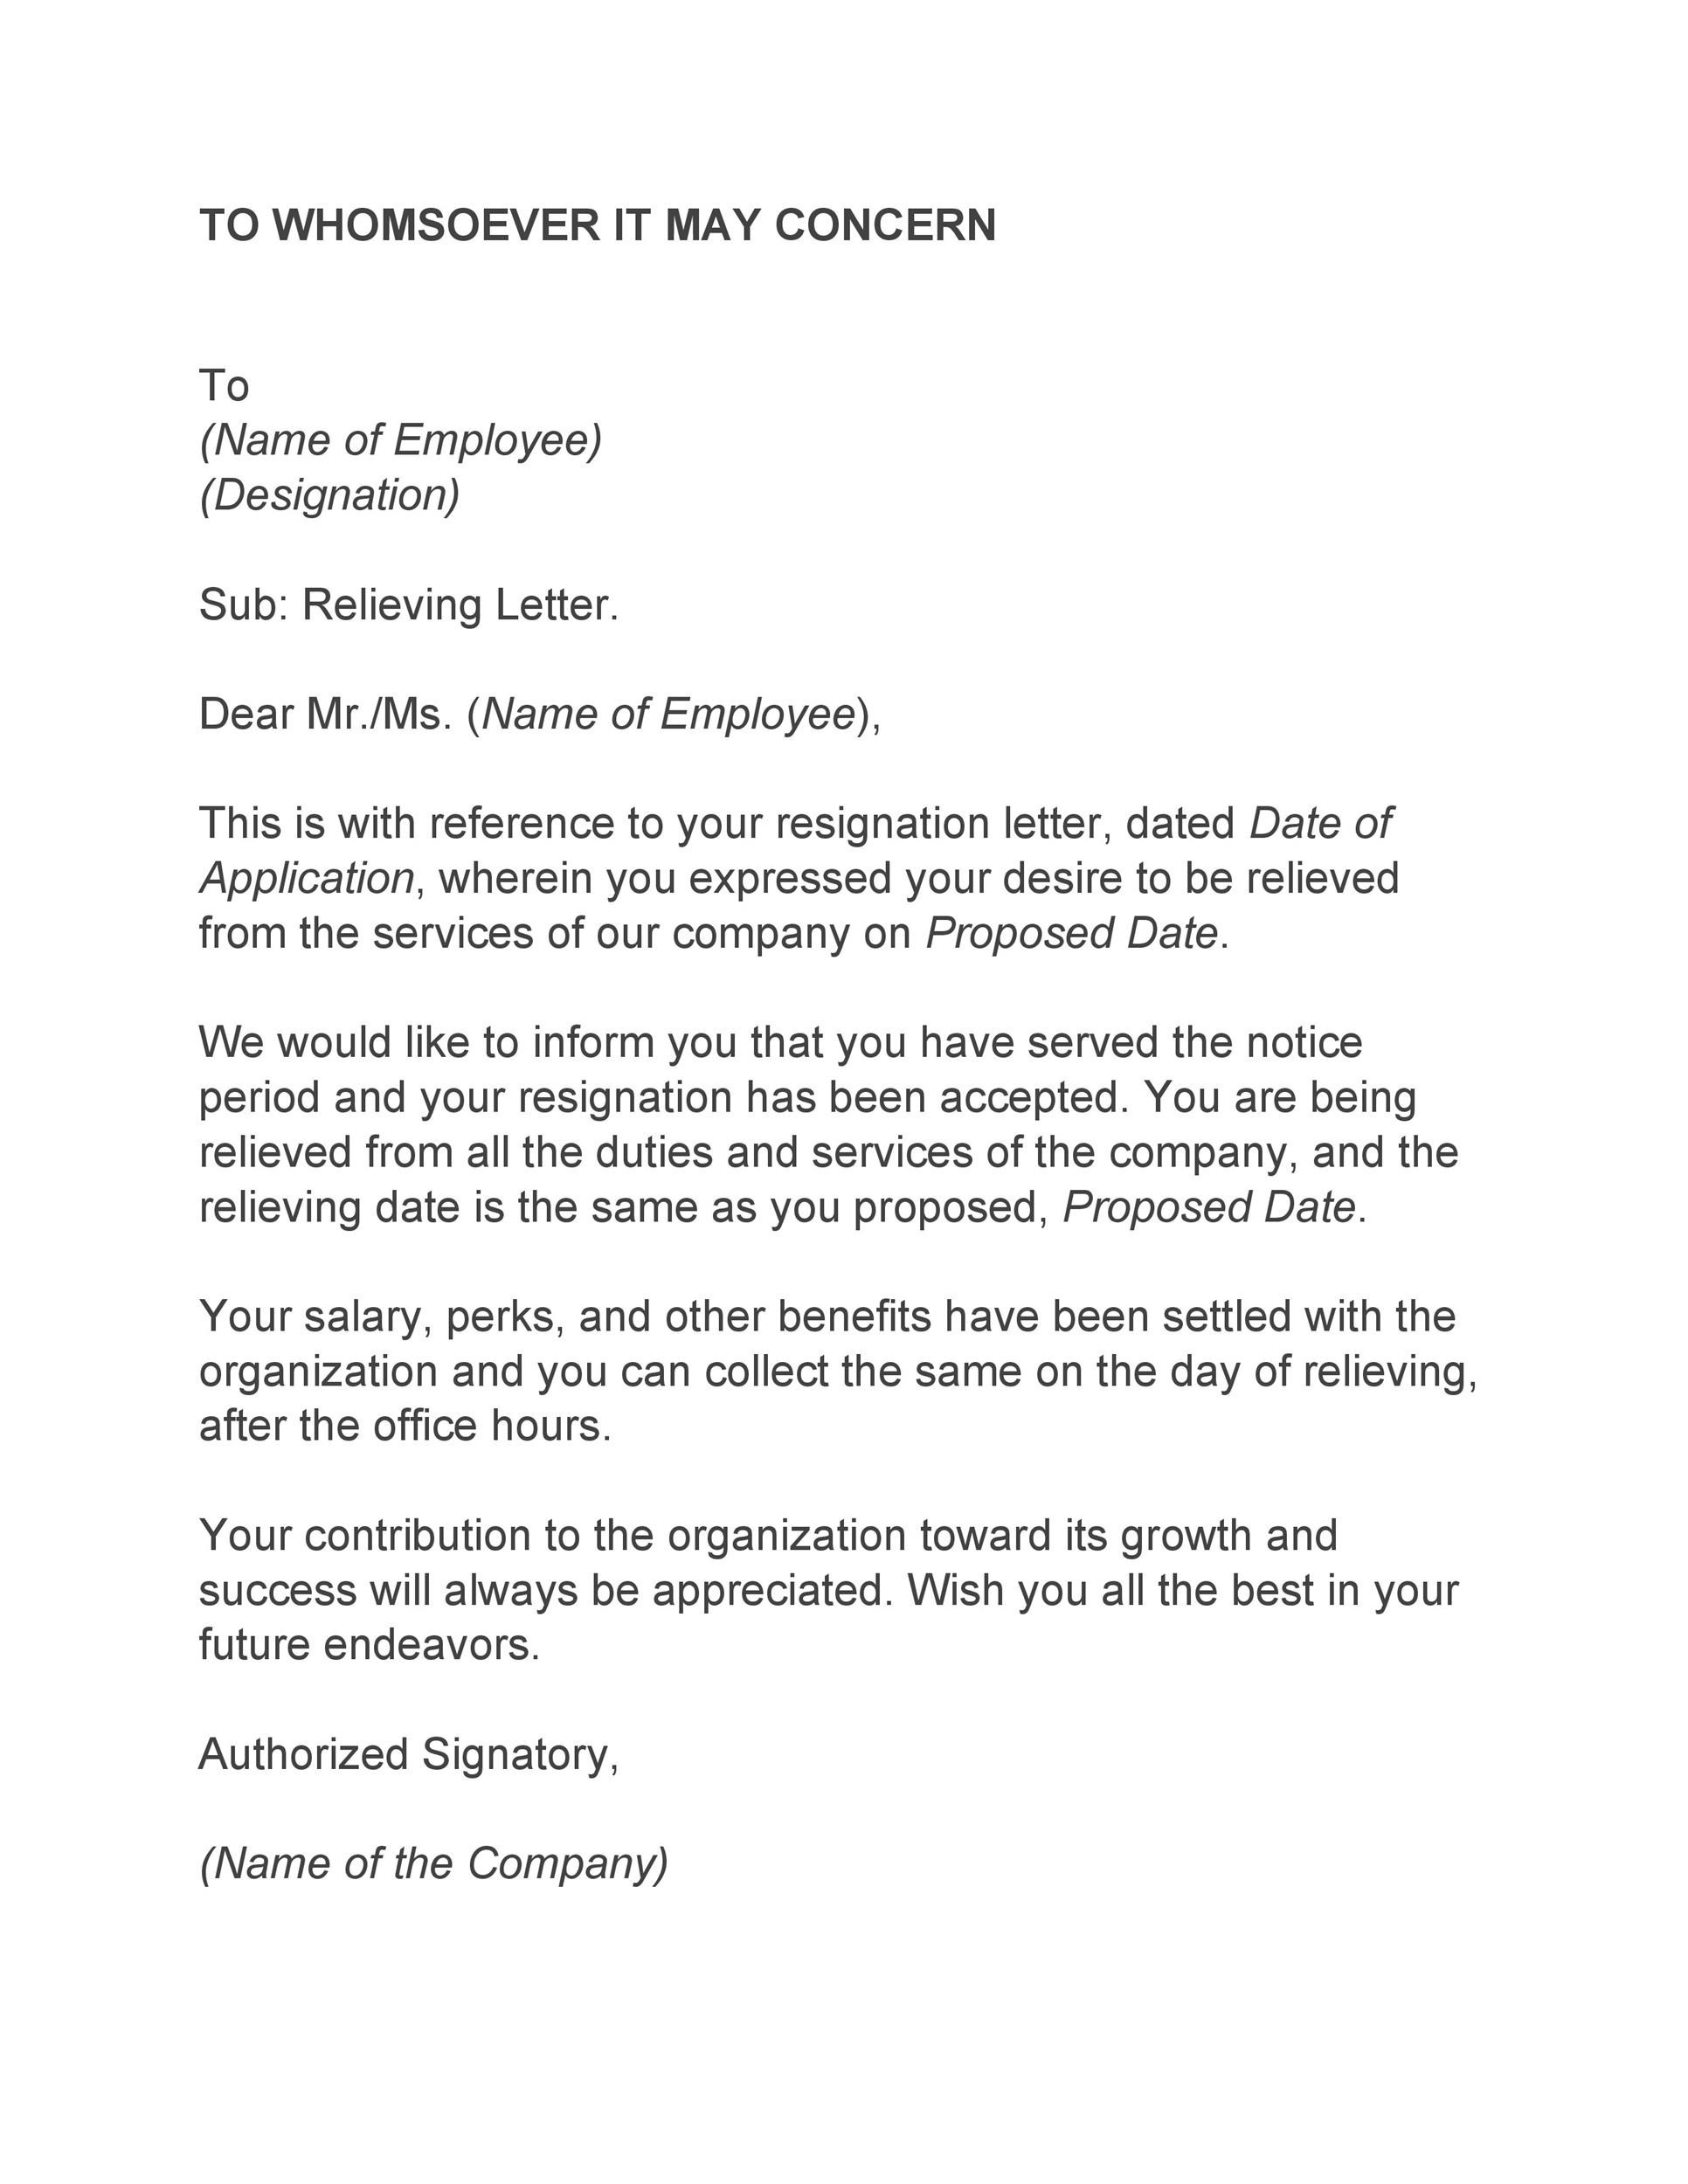 To Whom It May Concern Resignation Letter from templatelab.com